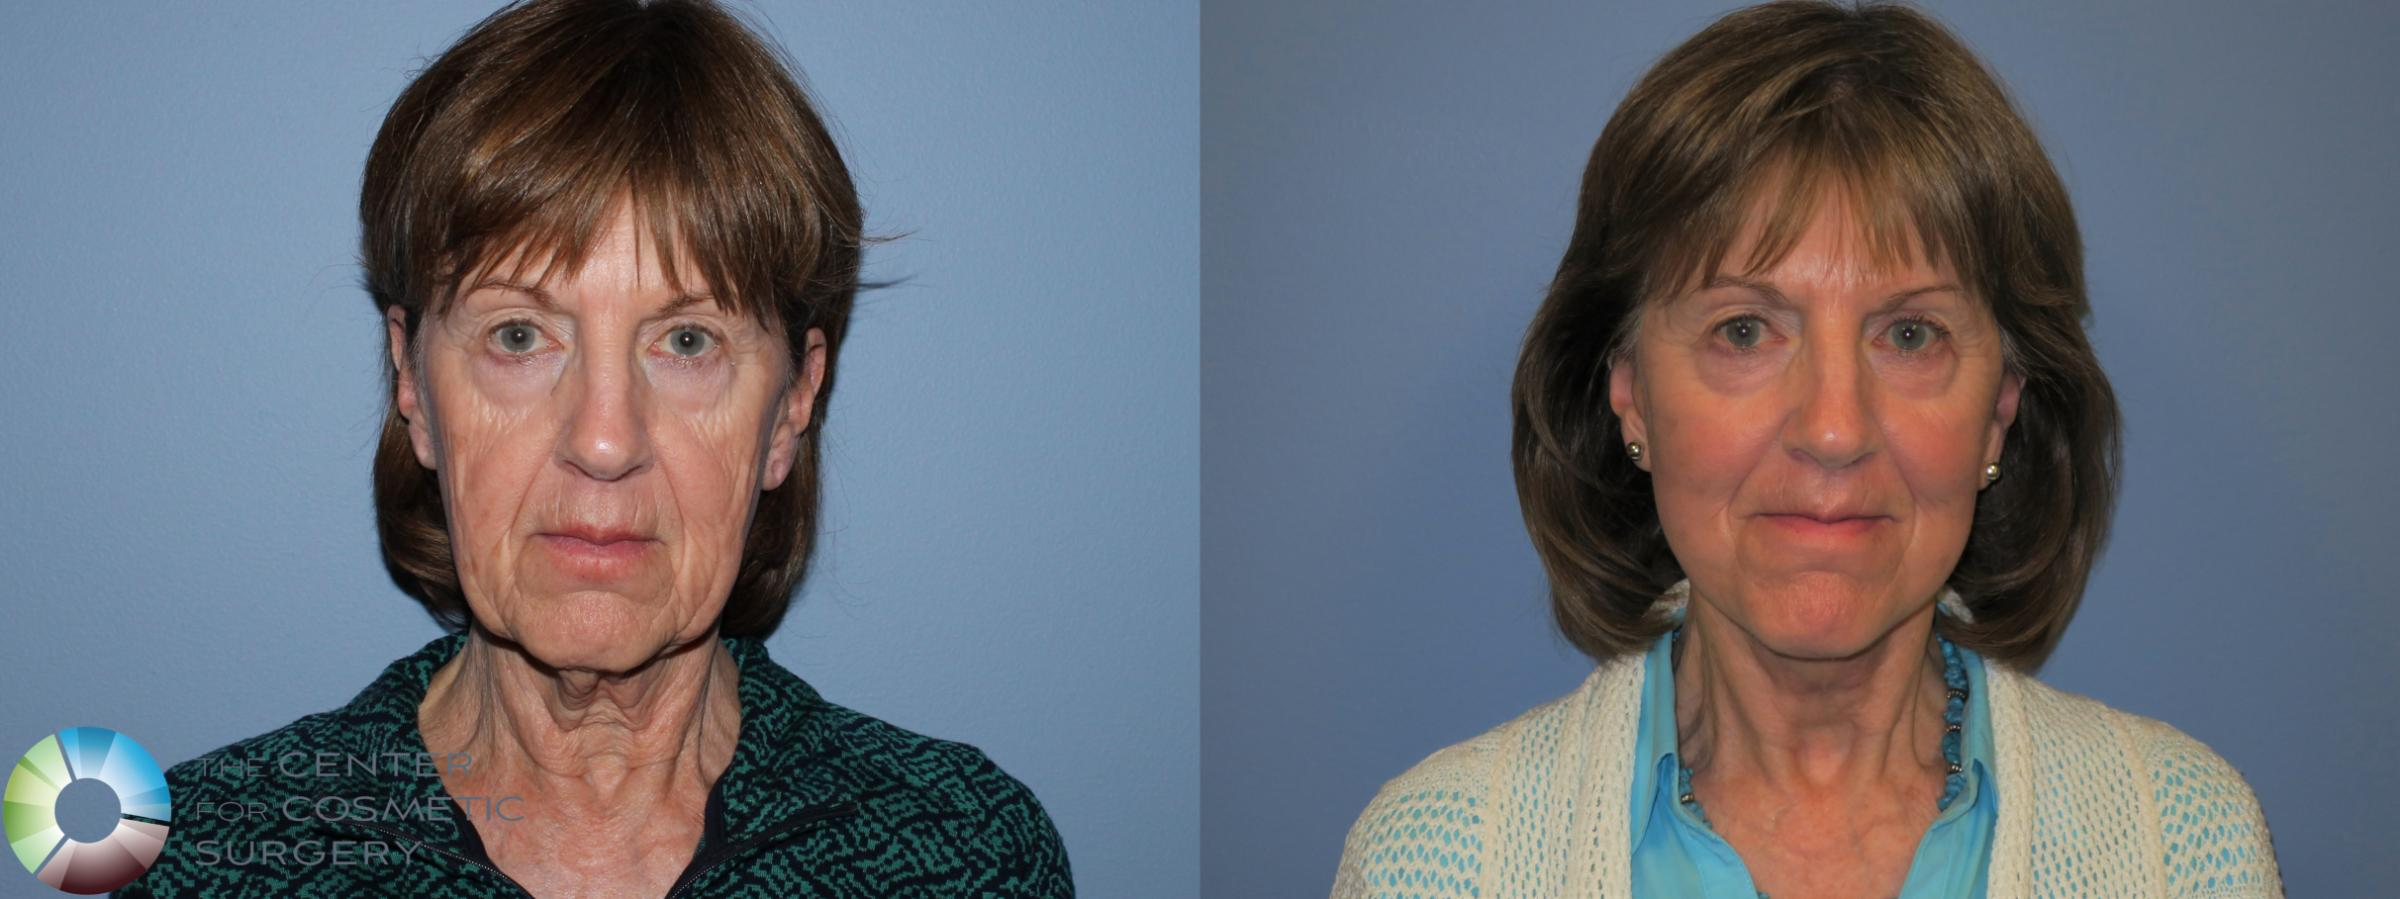 Mini Facelift Case 11452 Before & After Front | Golden, CO | The Center for Cosmetic Surgery